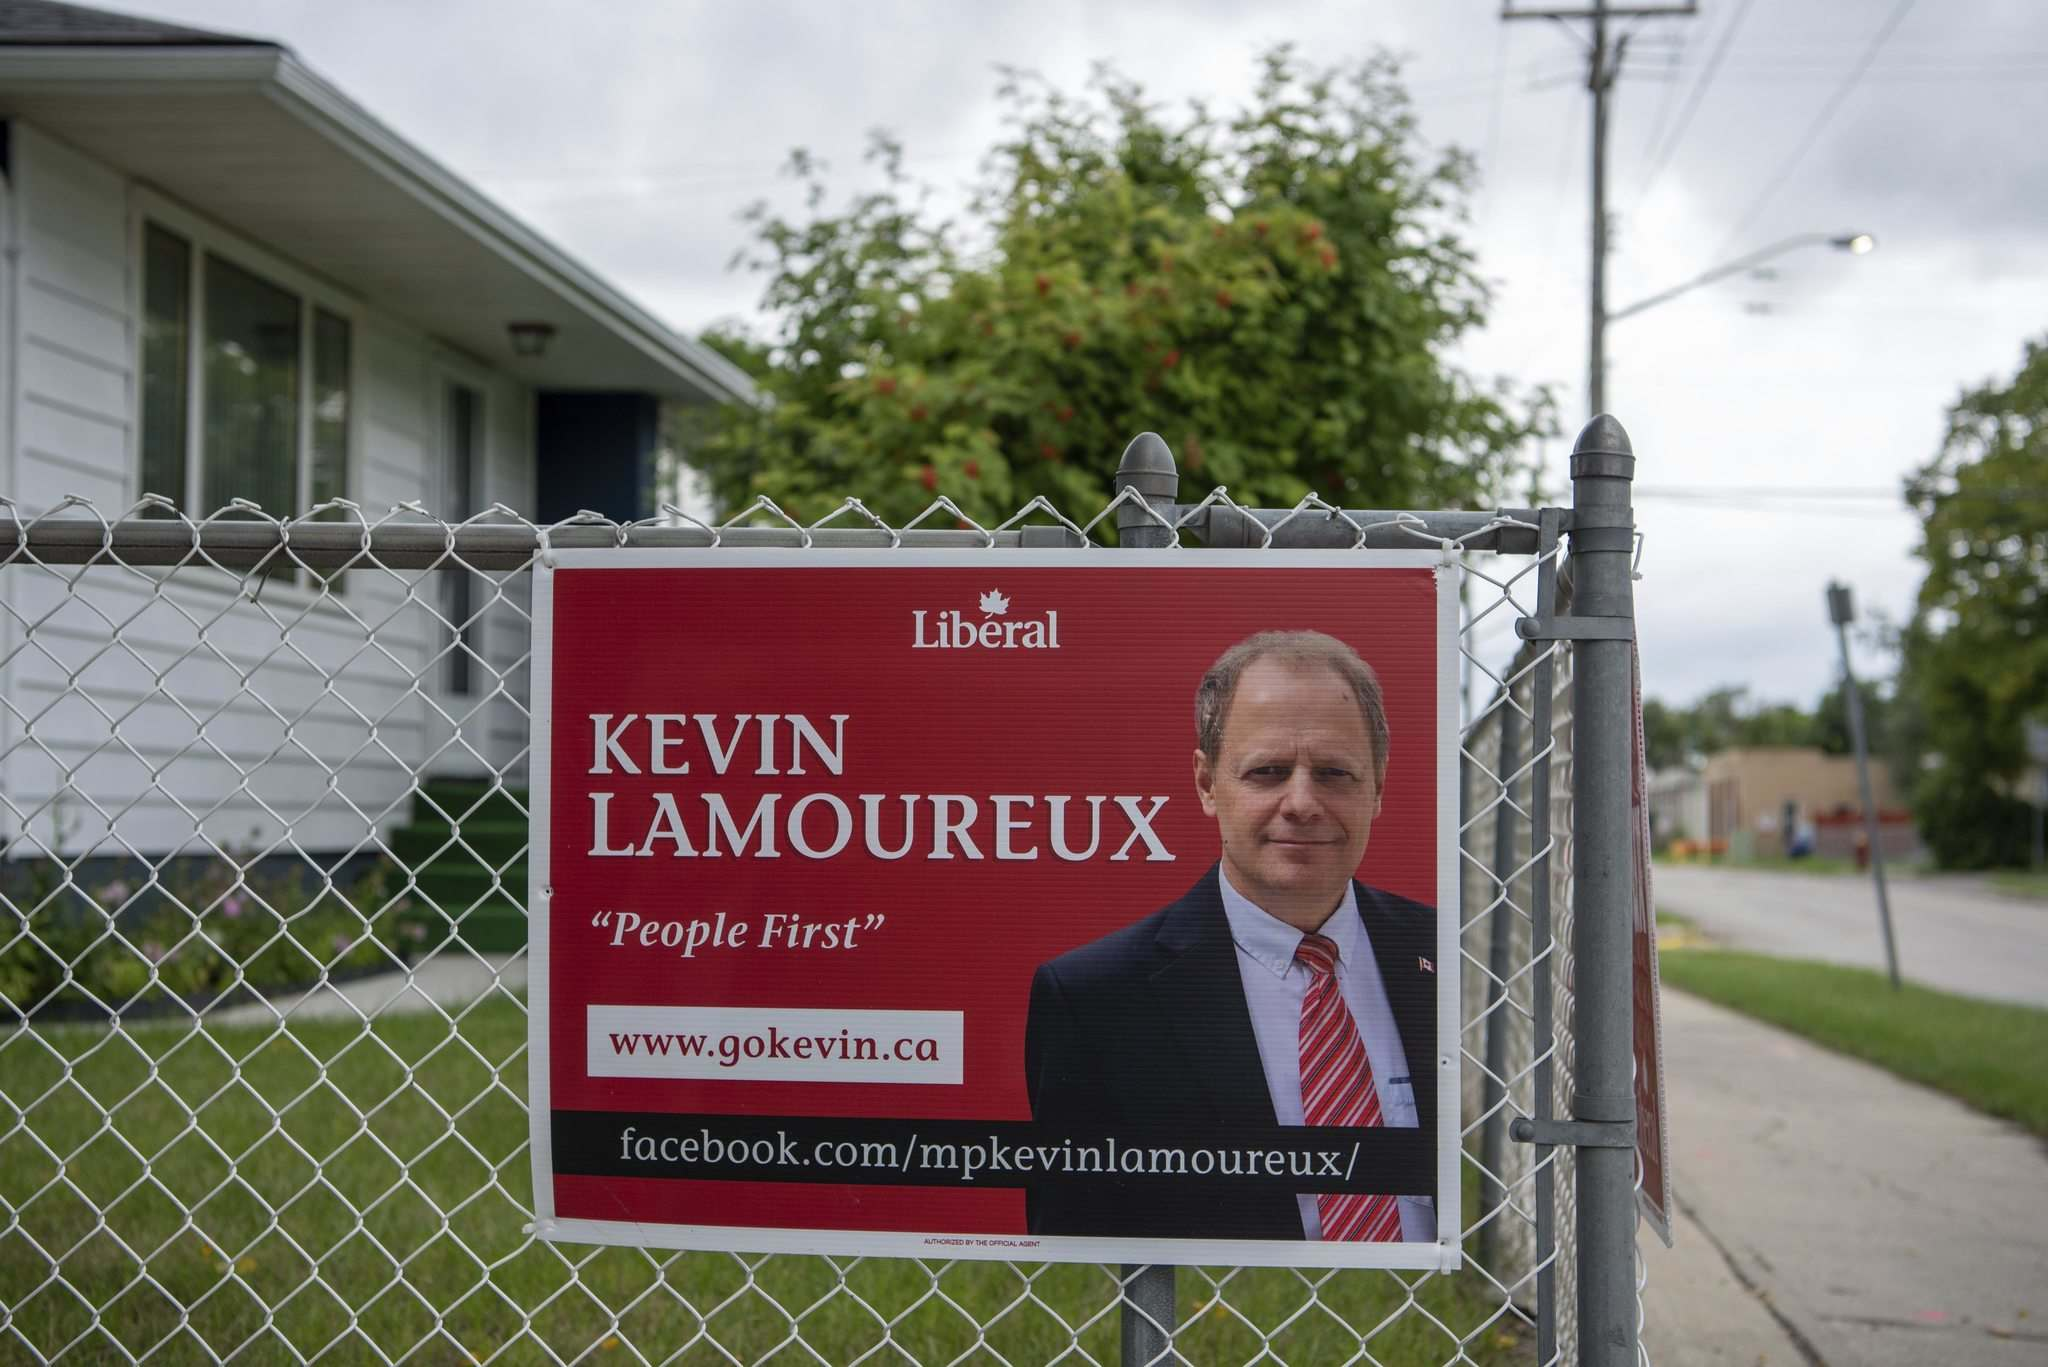 Kevin Lamoureux took 46 per cent of the vote in 2019.